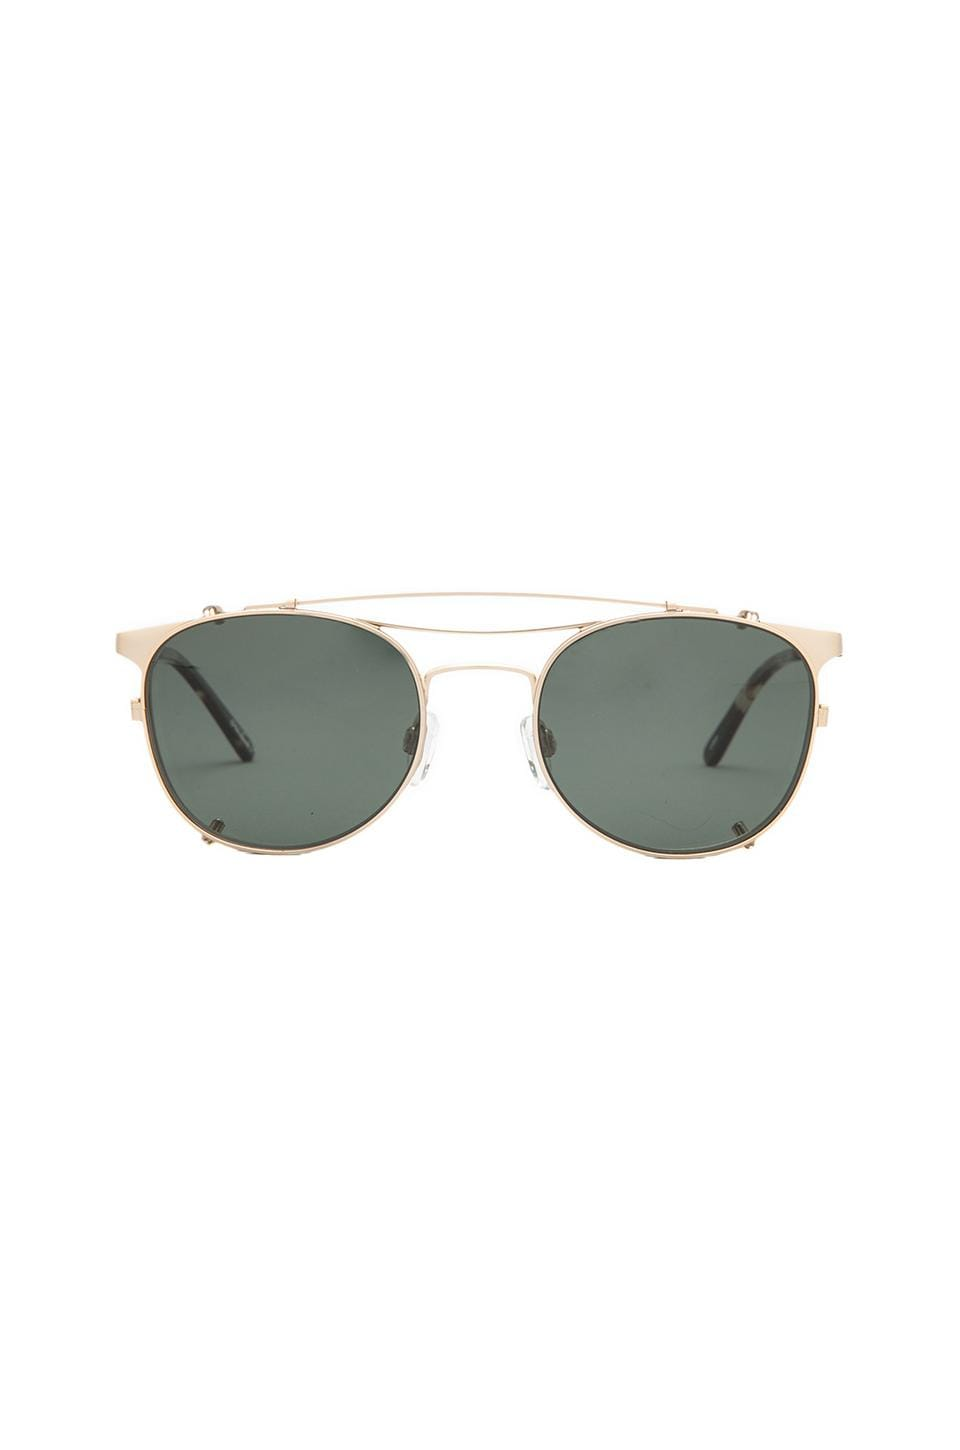 RAEN Stryder in Green Polarized